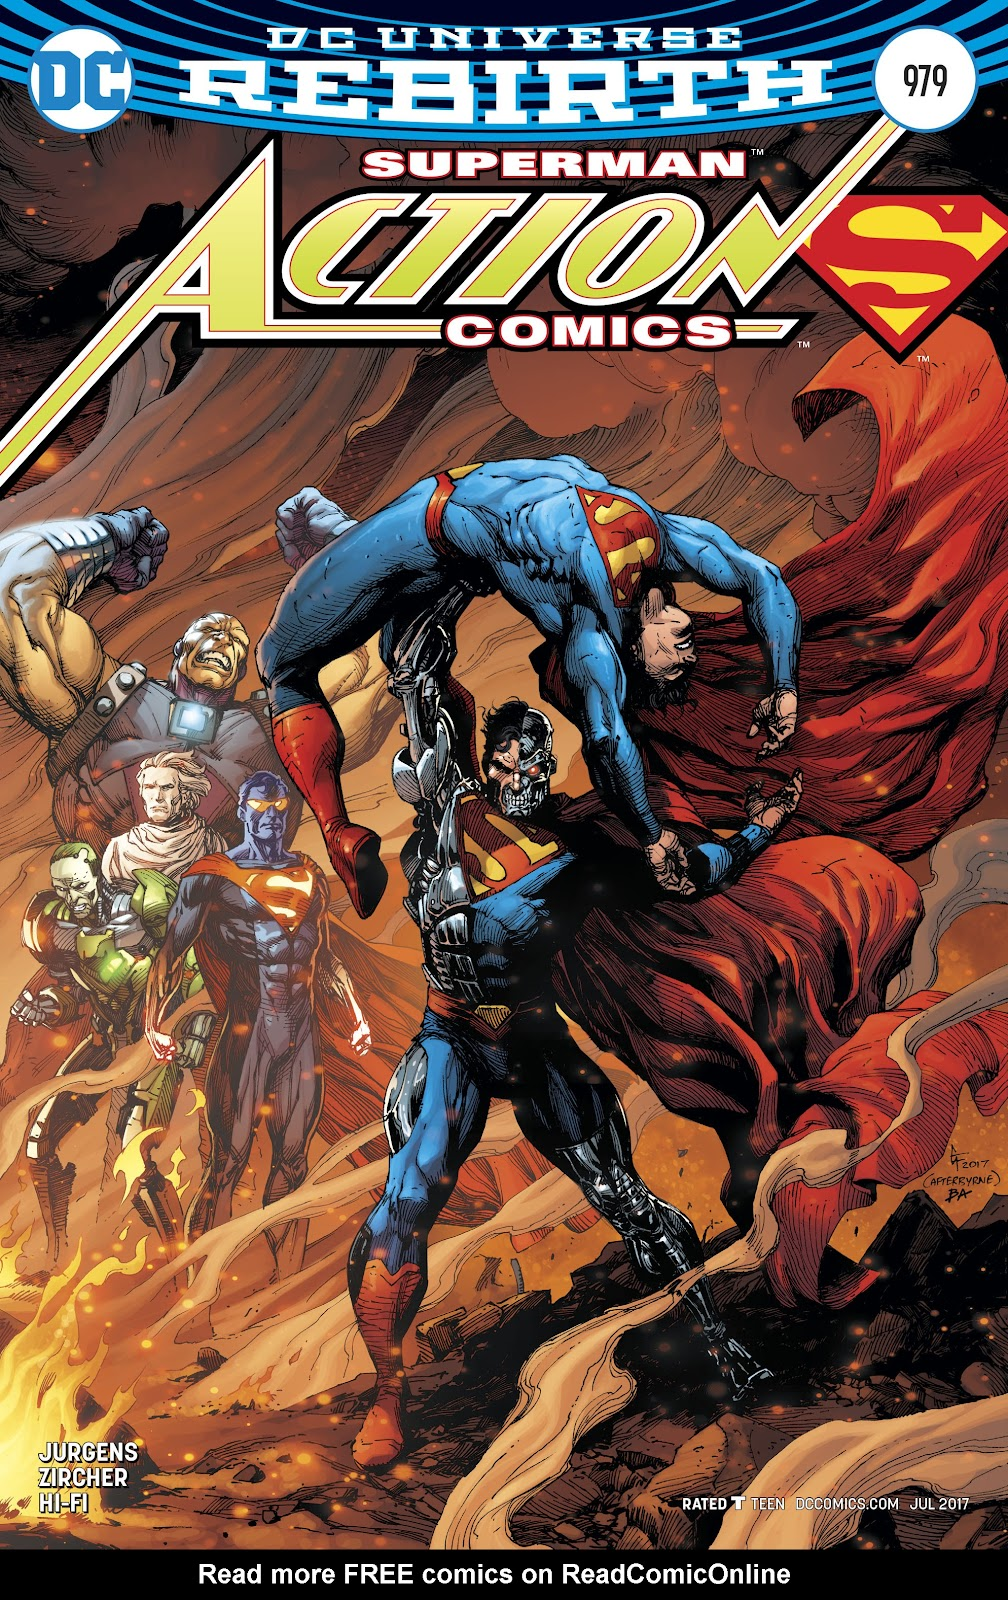 Read online Action Comics (2016) comic -  Issue #979 - 3